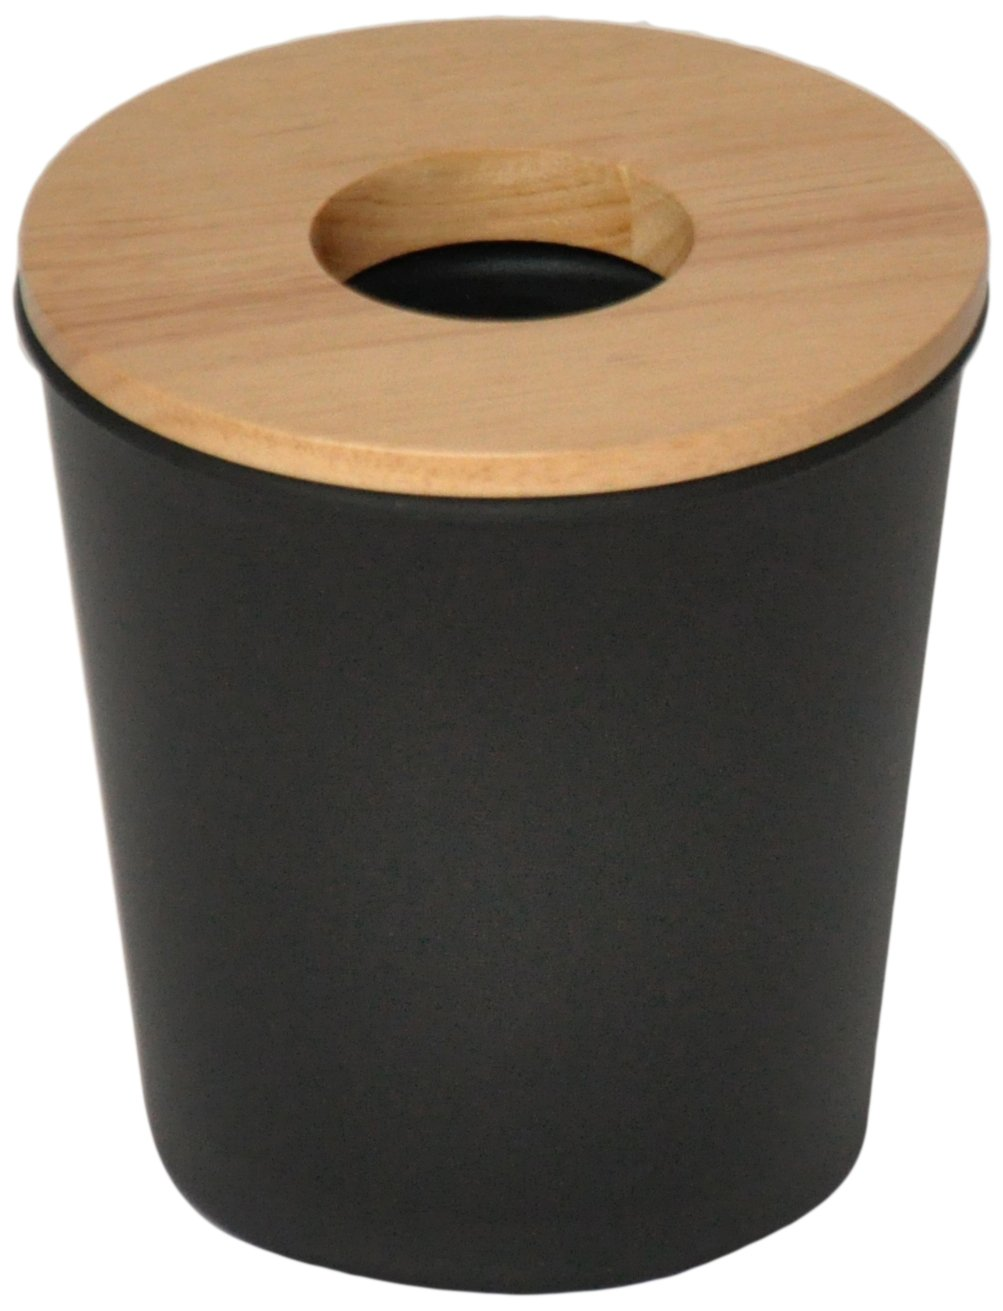 Opportunity 26b1512050170 Ebonite Mini Plastic Bin/13 x 13 x 14 cm Black Wood